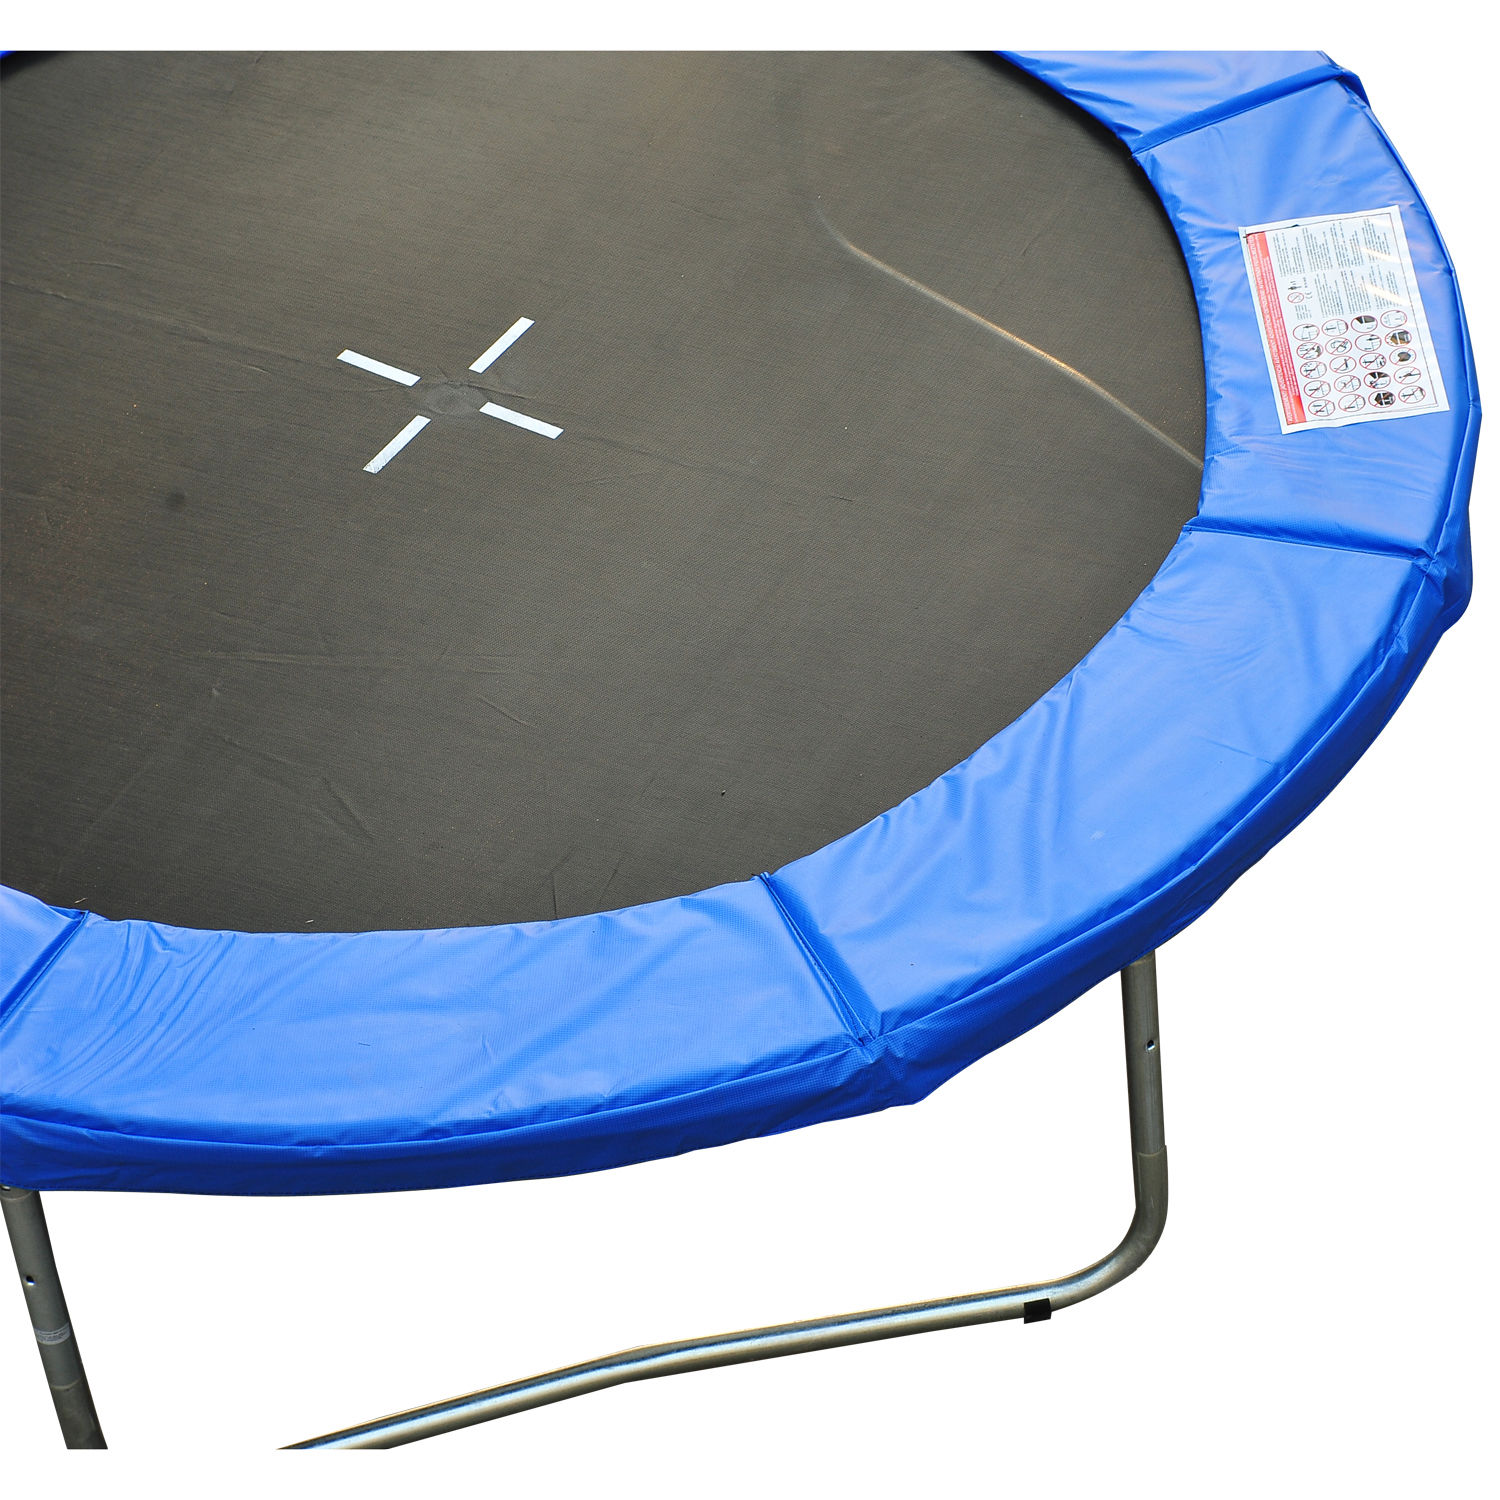 8ft-Trampoline-Pad-Spring-Safety-Replacement-Gym-Bounce-Jump-Cover-EPE-Foam thumbnail 5